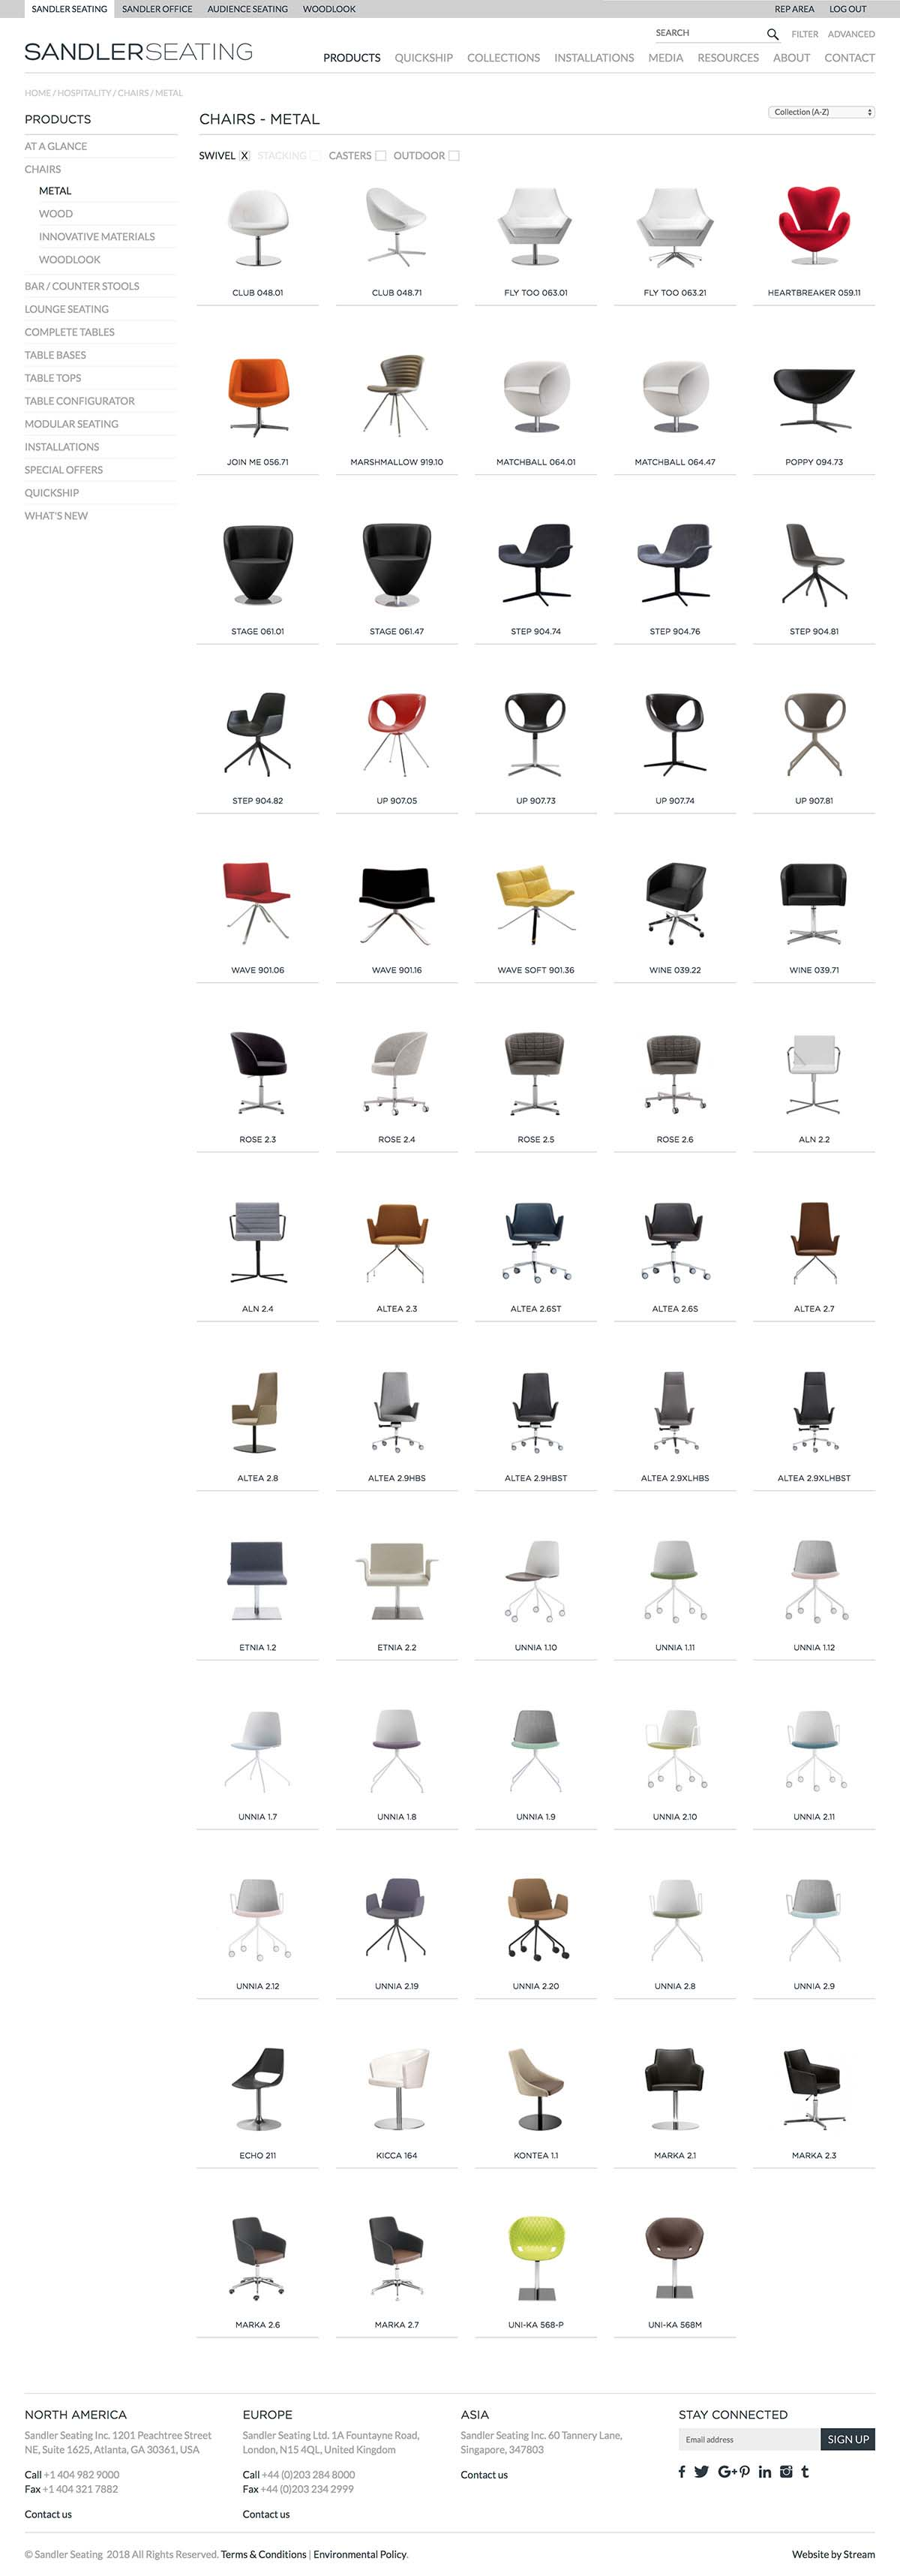 contract furniture product listings